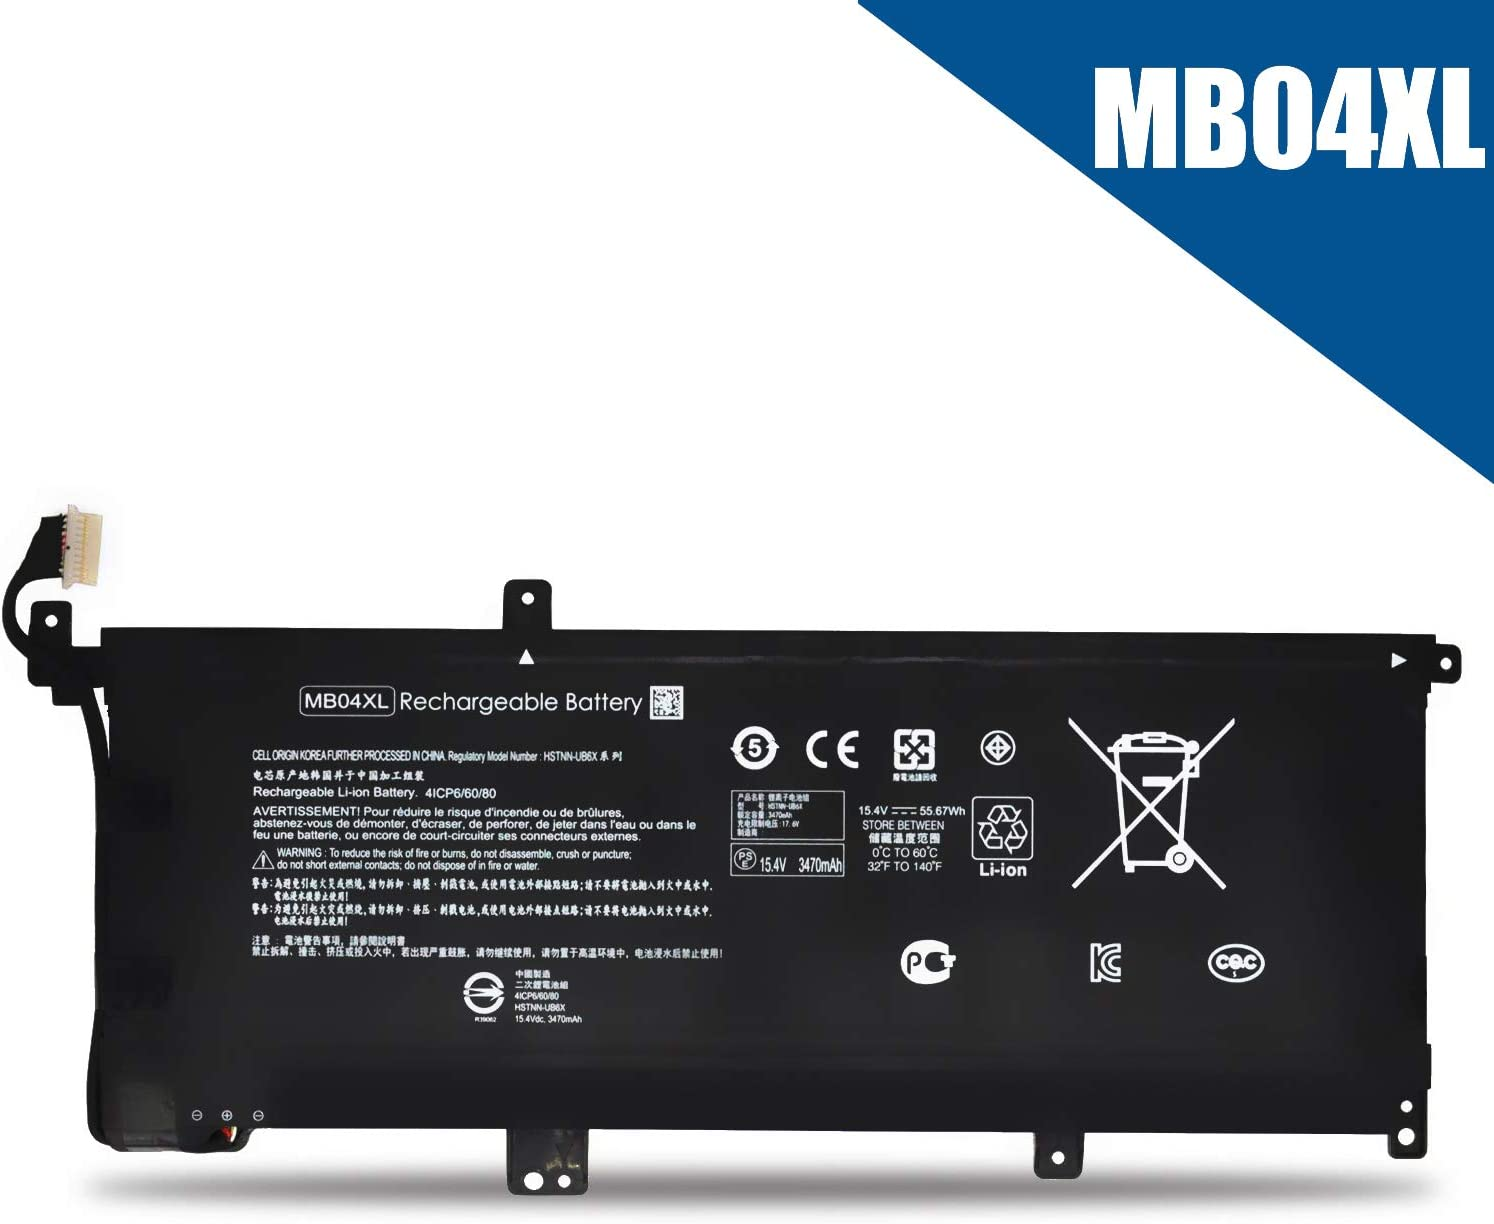 Emaks MB04XL Battery MBO4XL for HP Envy X360 15-AQ000 M6-AQ000 Series:m6-aq103dx m6-aq105dx m6-aq005dx m6-aq003dx m6-aq103dx 15-aq173cl 15-aq273cl 15-aq165nr 15-aq267cl 15-aq293ms -15.4V 55.67Wh 4-Cel